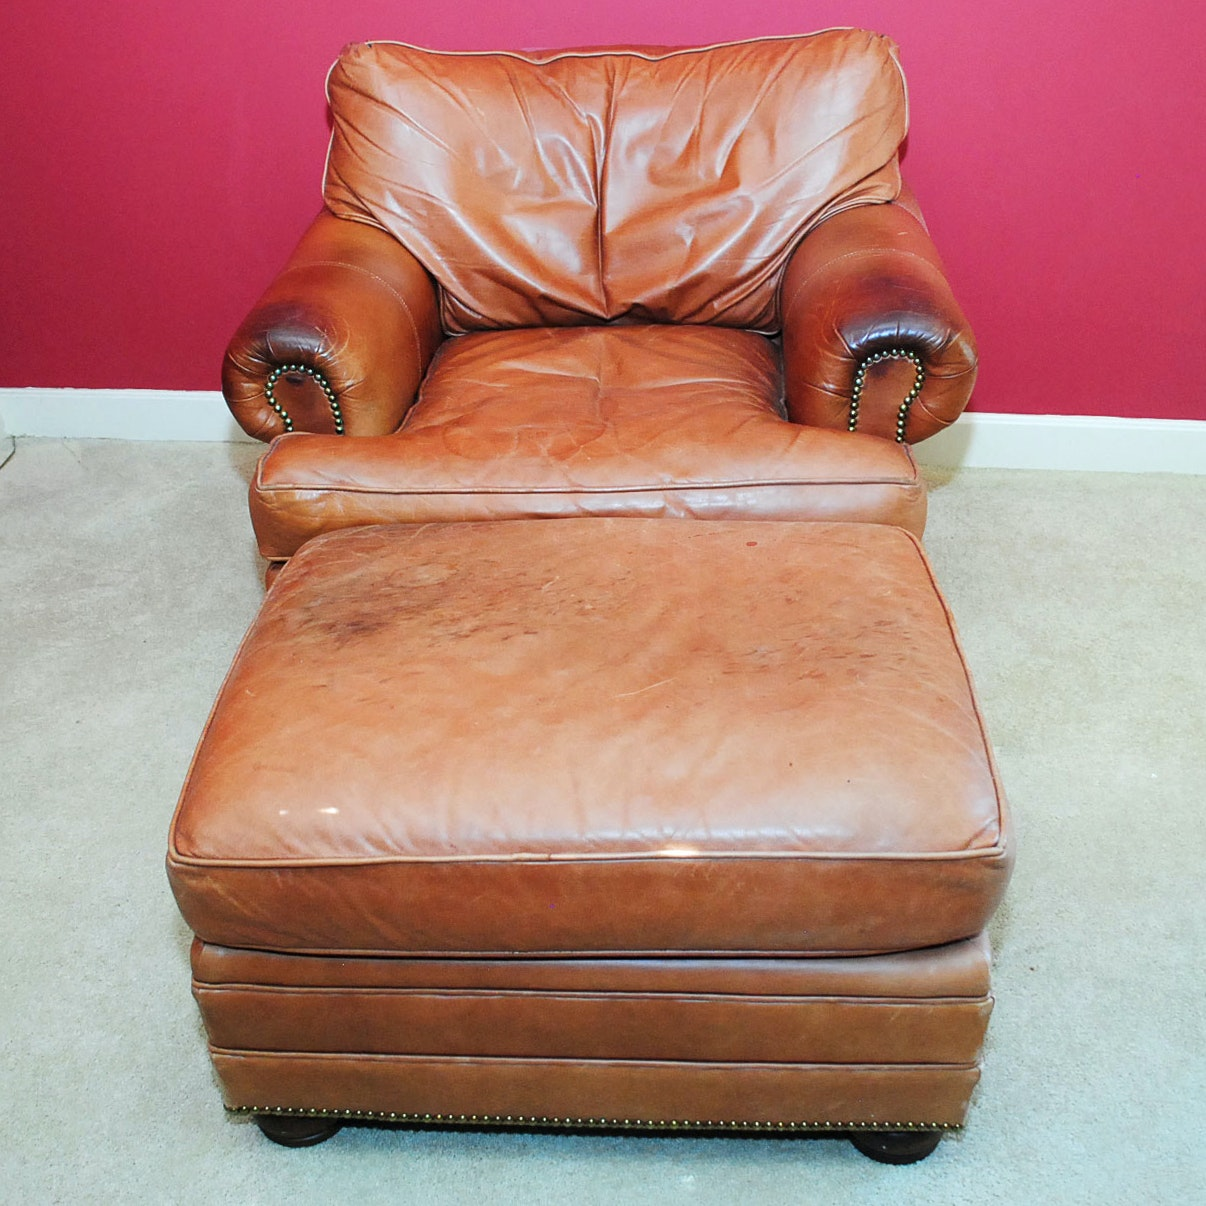 Vintage Brown Leather Armchair and Ottoman & ChairWorks Reclining Leather Lounge Chair With Ottoman : EBTH islam-shia.org